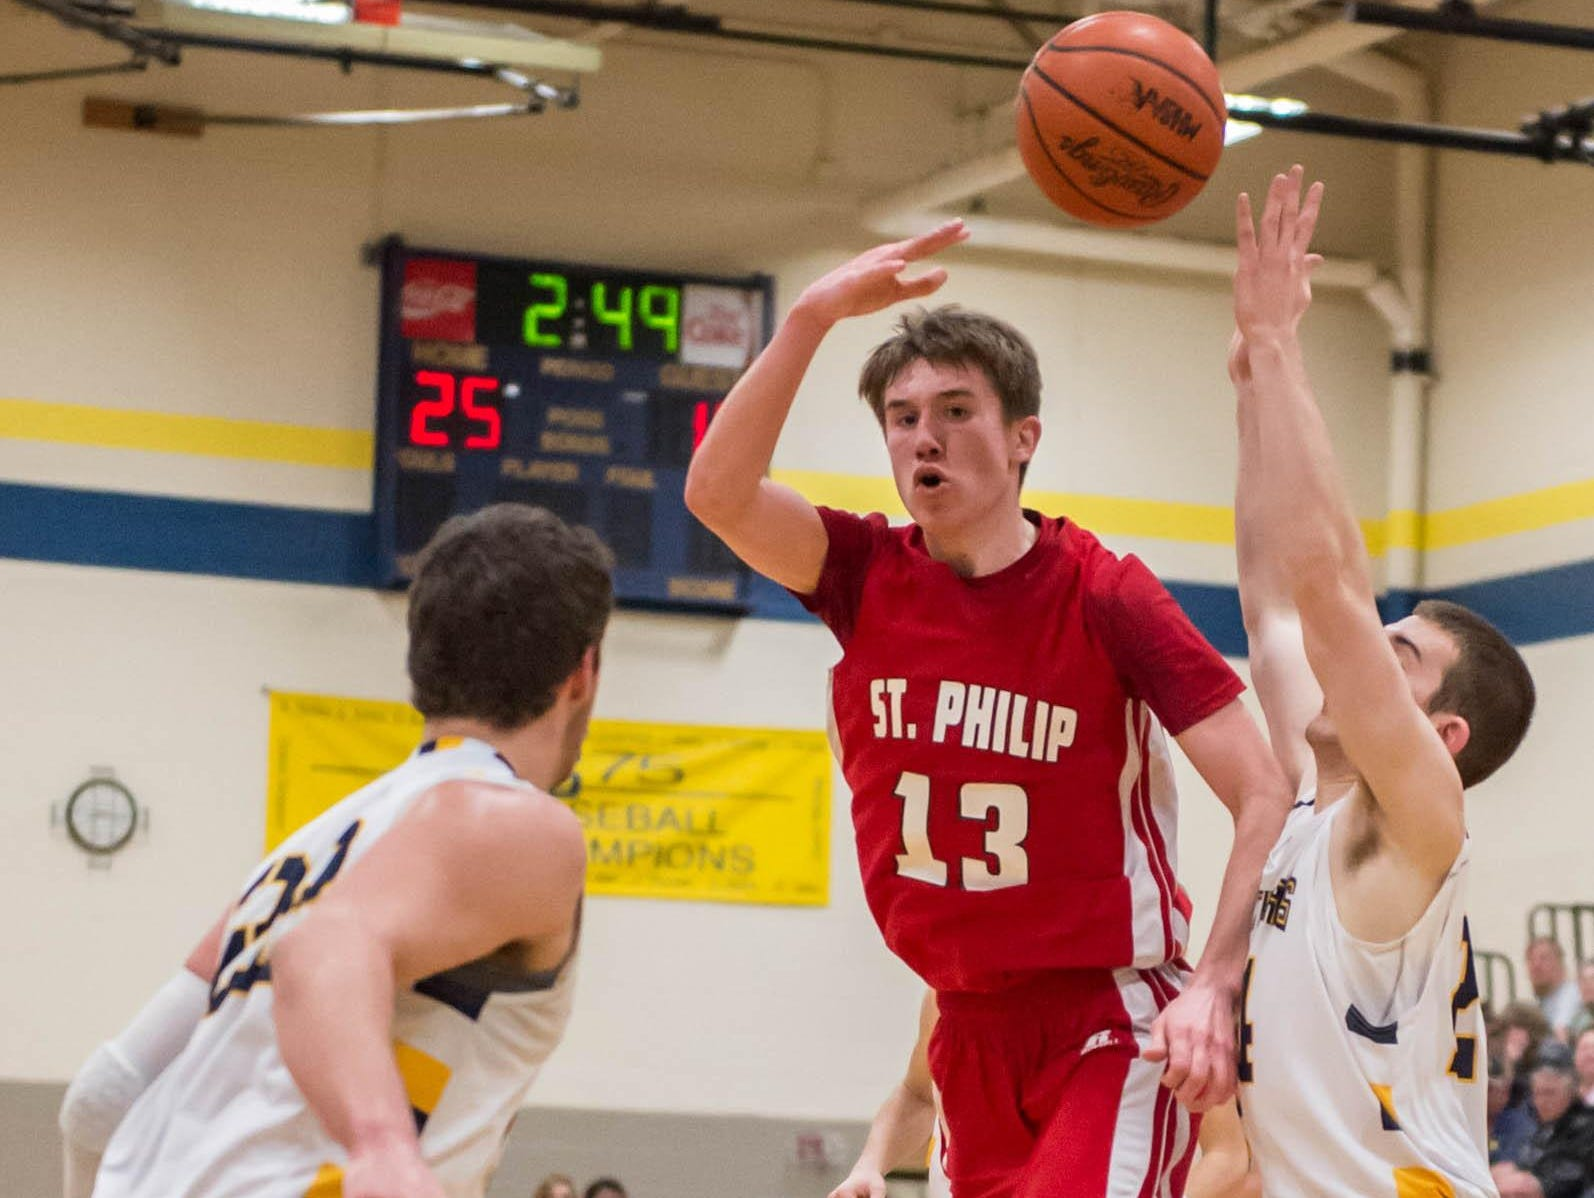 St. Philip's Drew Lantinga (13) throws a no-look pass over a Climax-Scotts defender in action earlier this season.